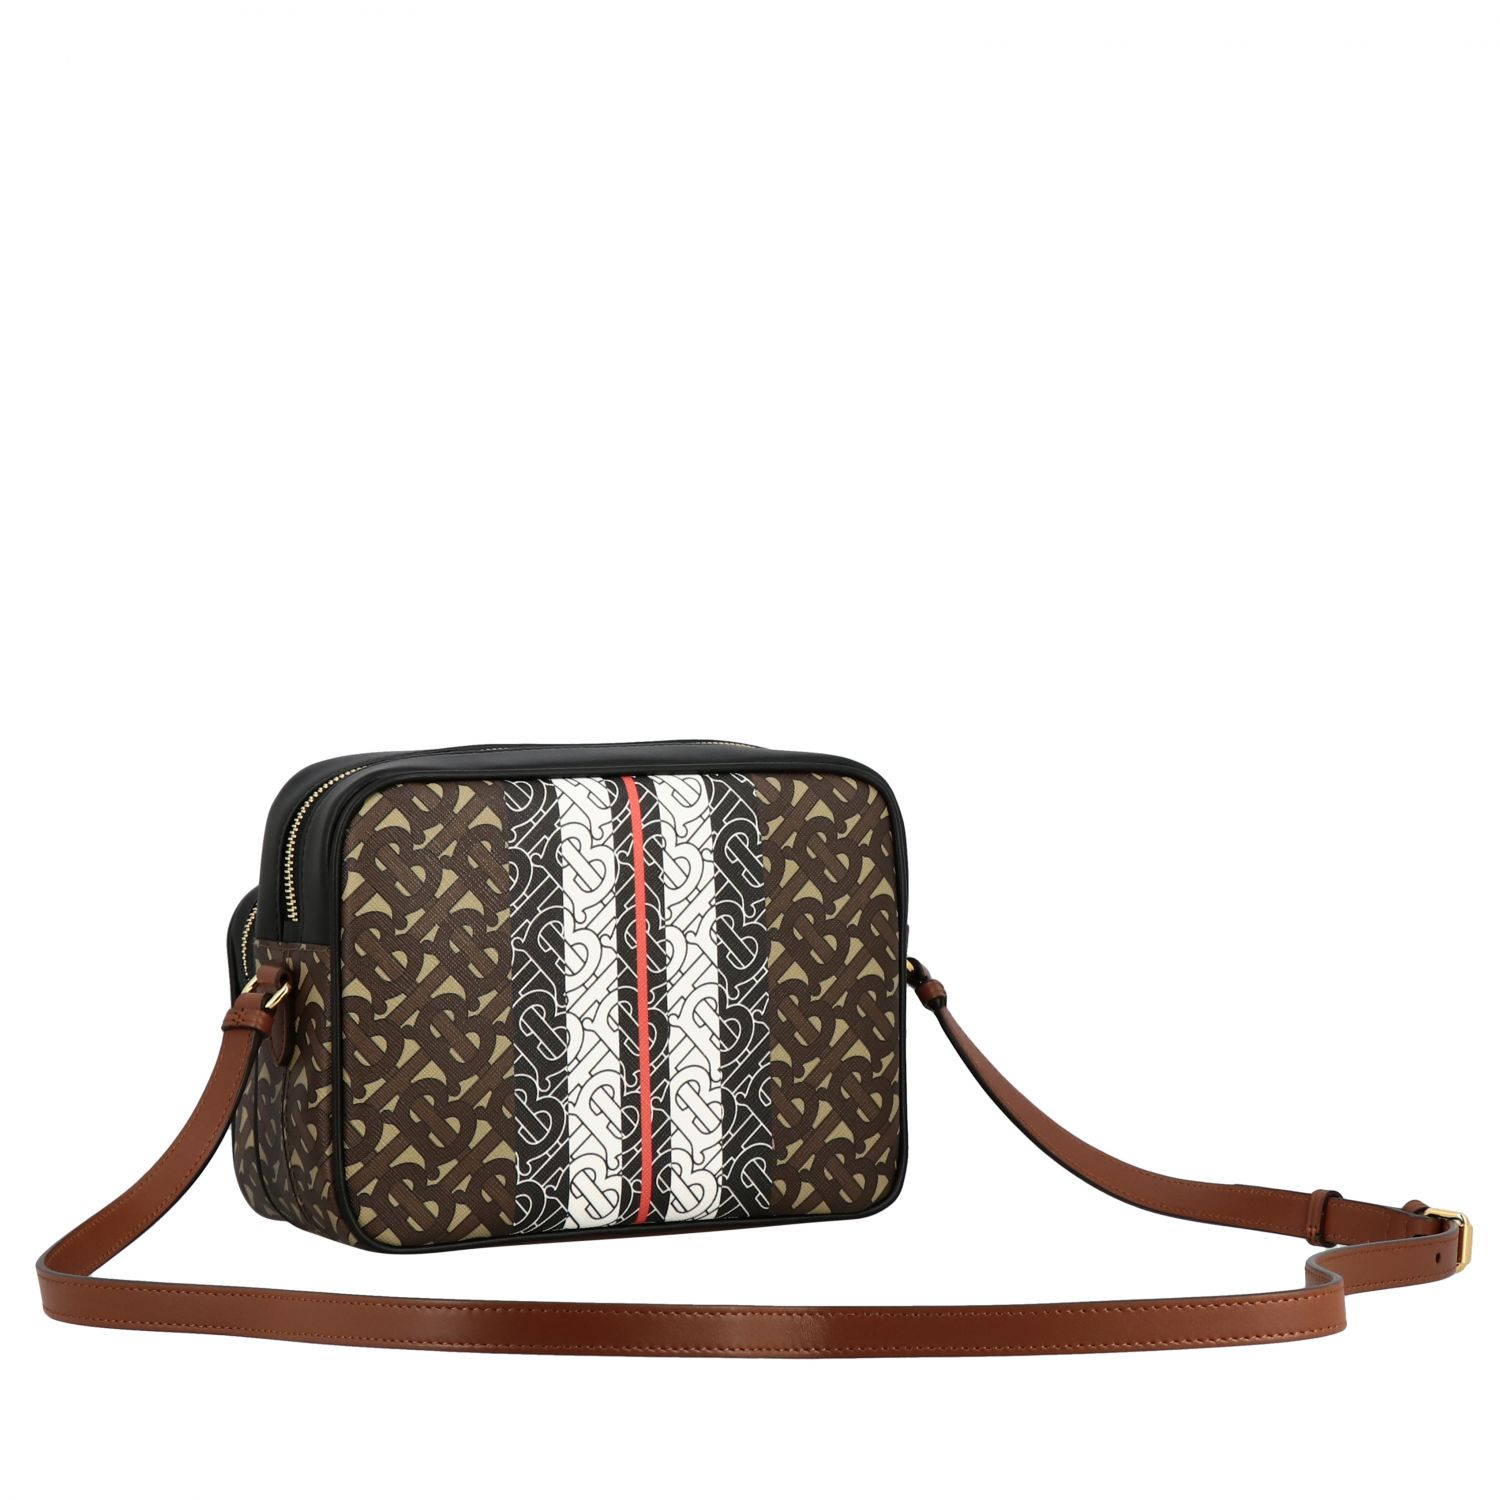 Burberry leather shoulder bag with all over TB print beige 3